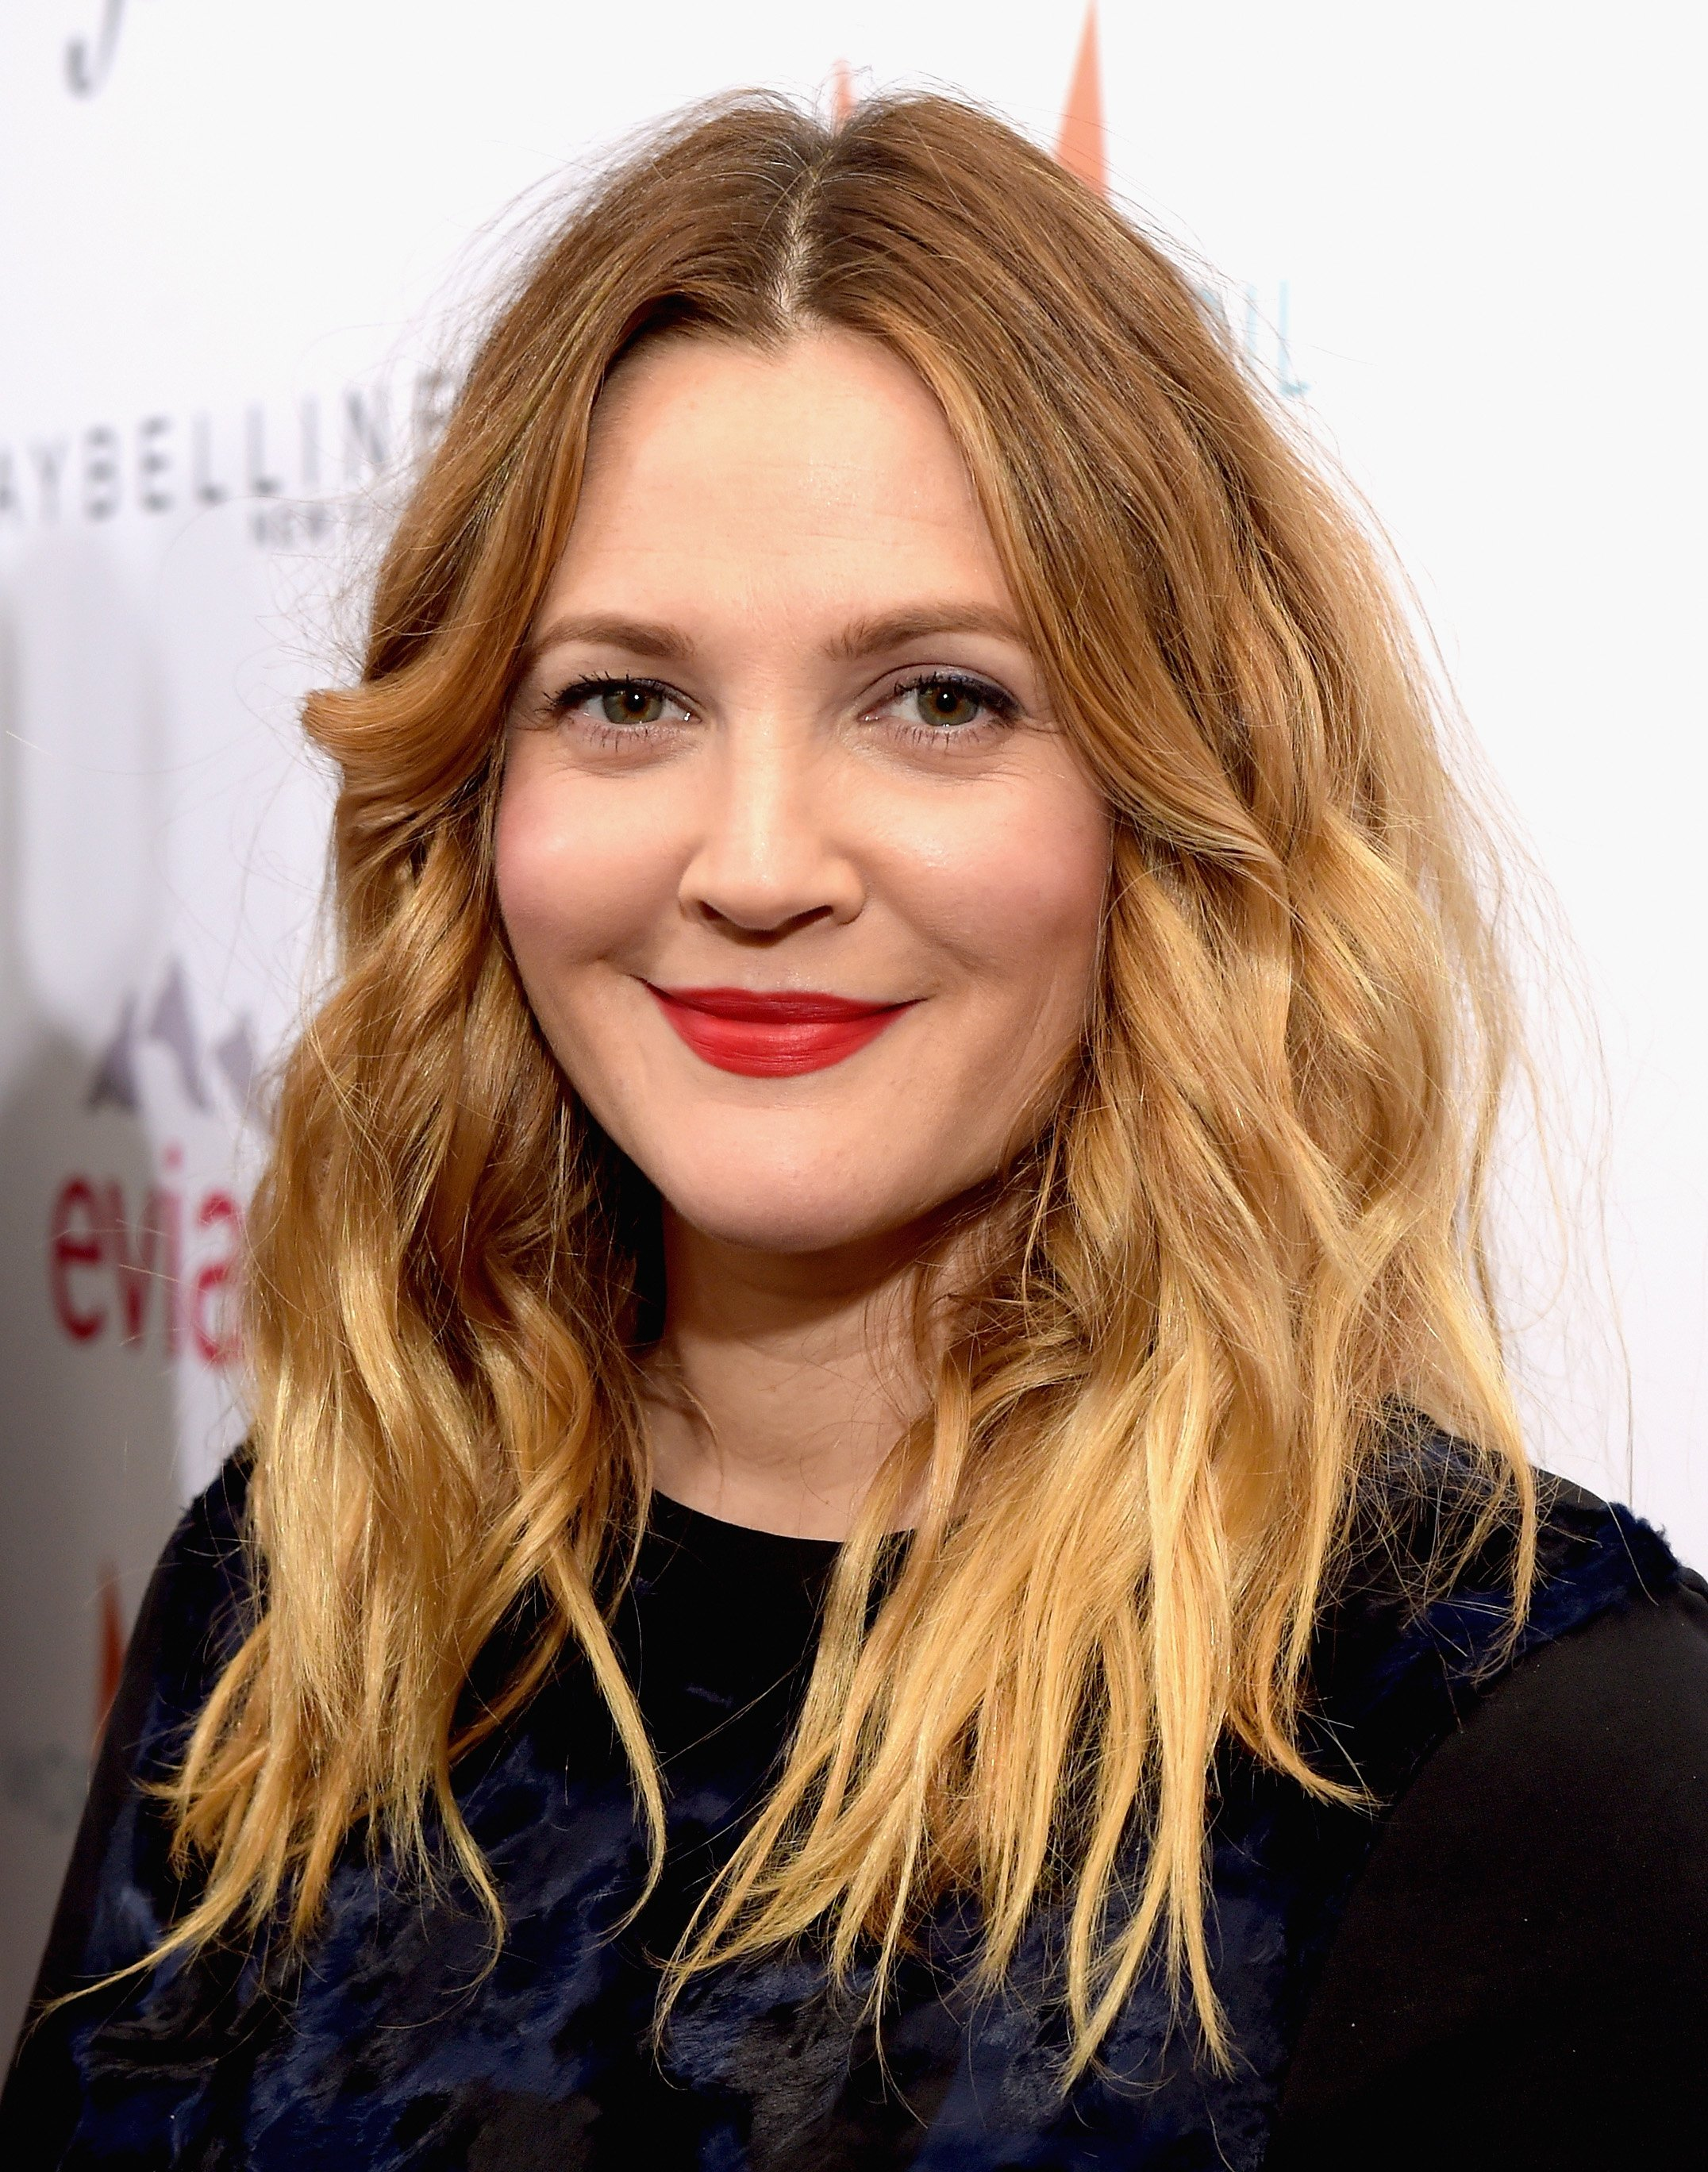 """Actress Drew Barrymore attends The DAILY FRONT ROW """"Fashion Los Angeles Awards"""" Show at Sunset Tower on January 22, 2015 in West Hollywood, California. 